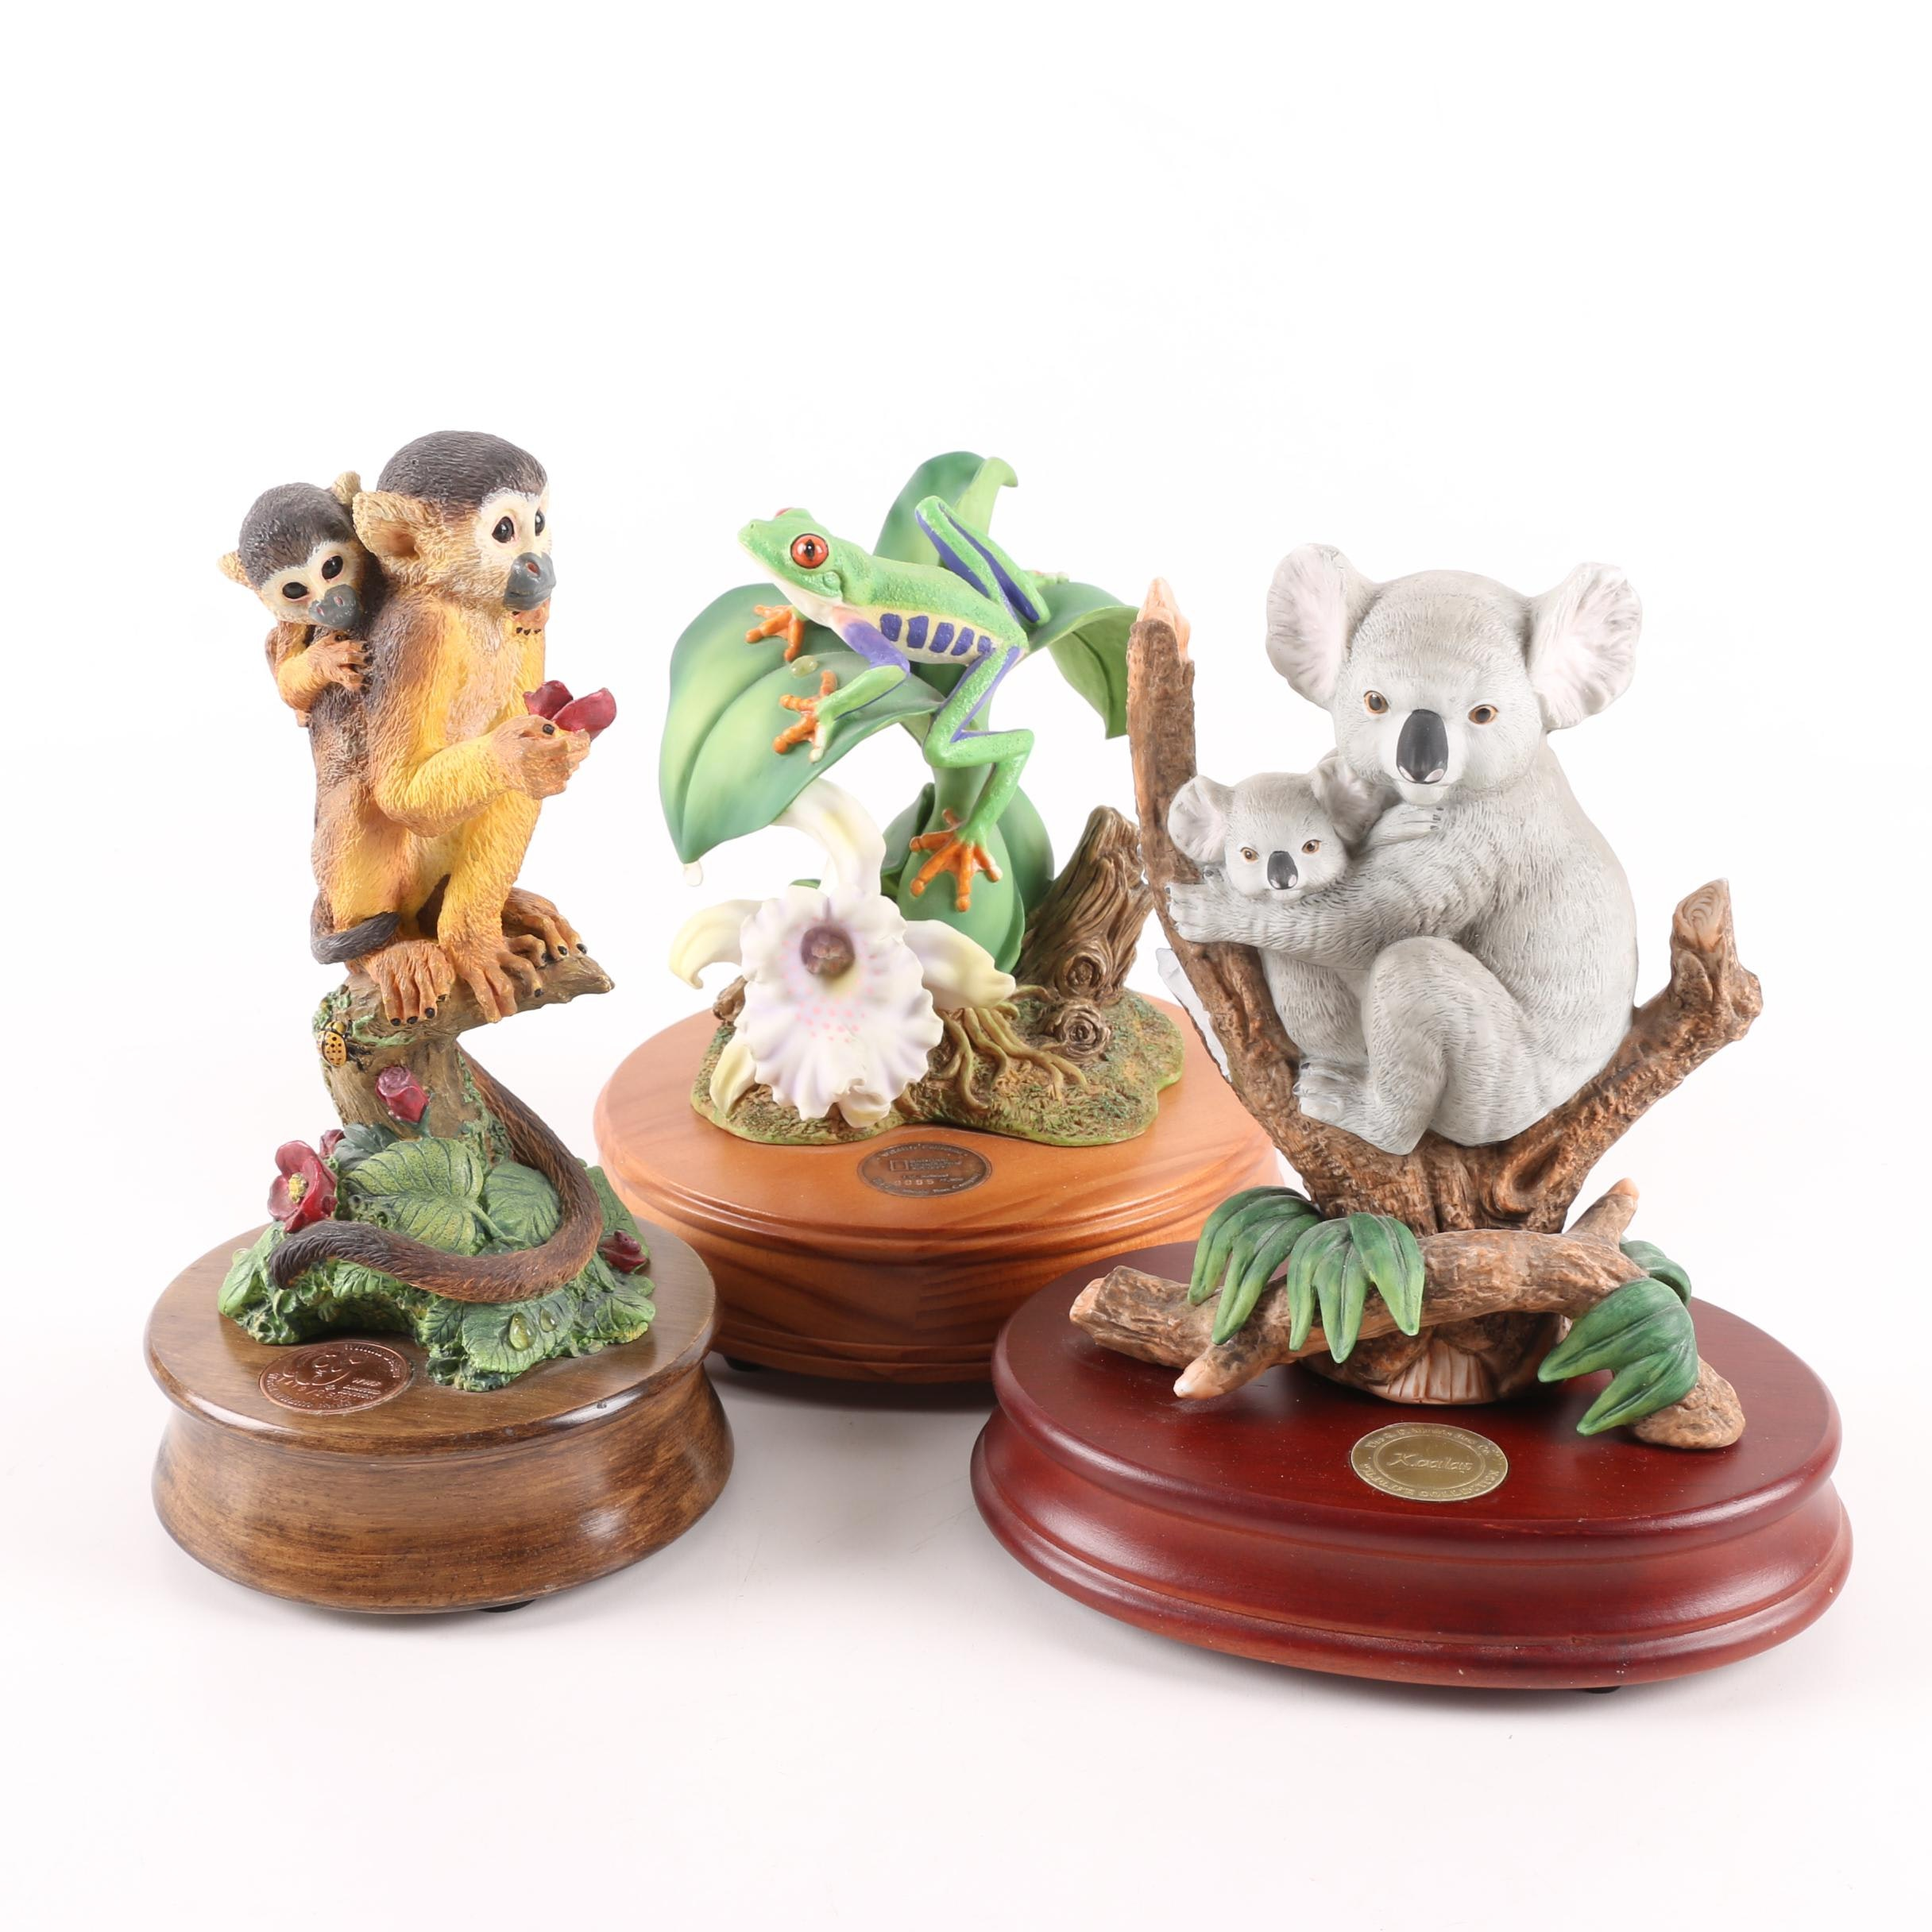 Resin and Wood Music Figurines